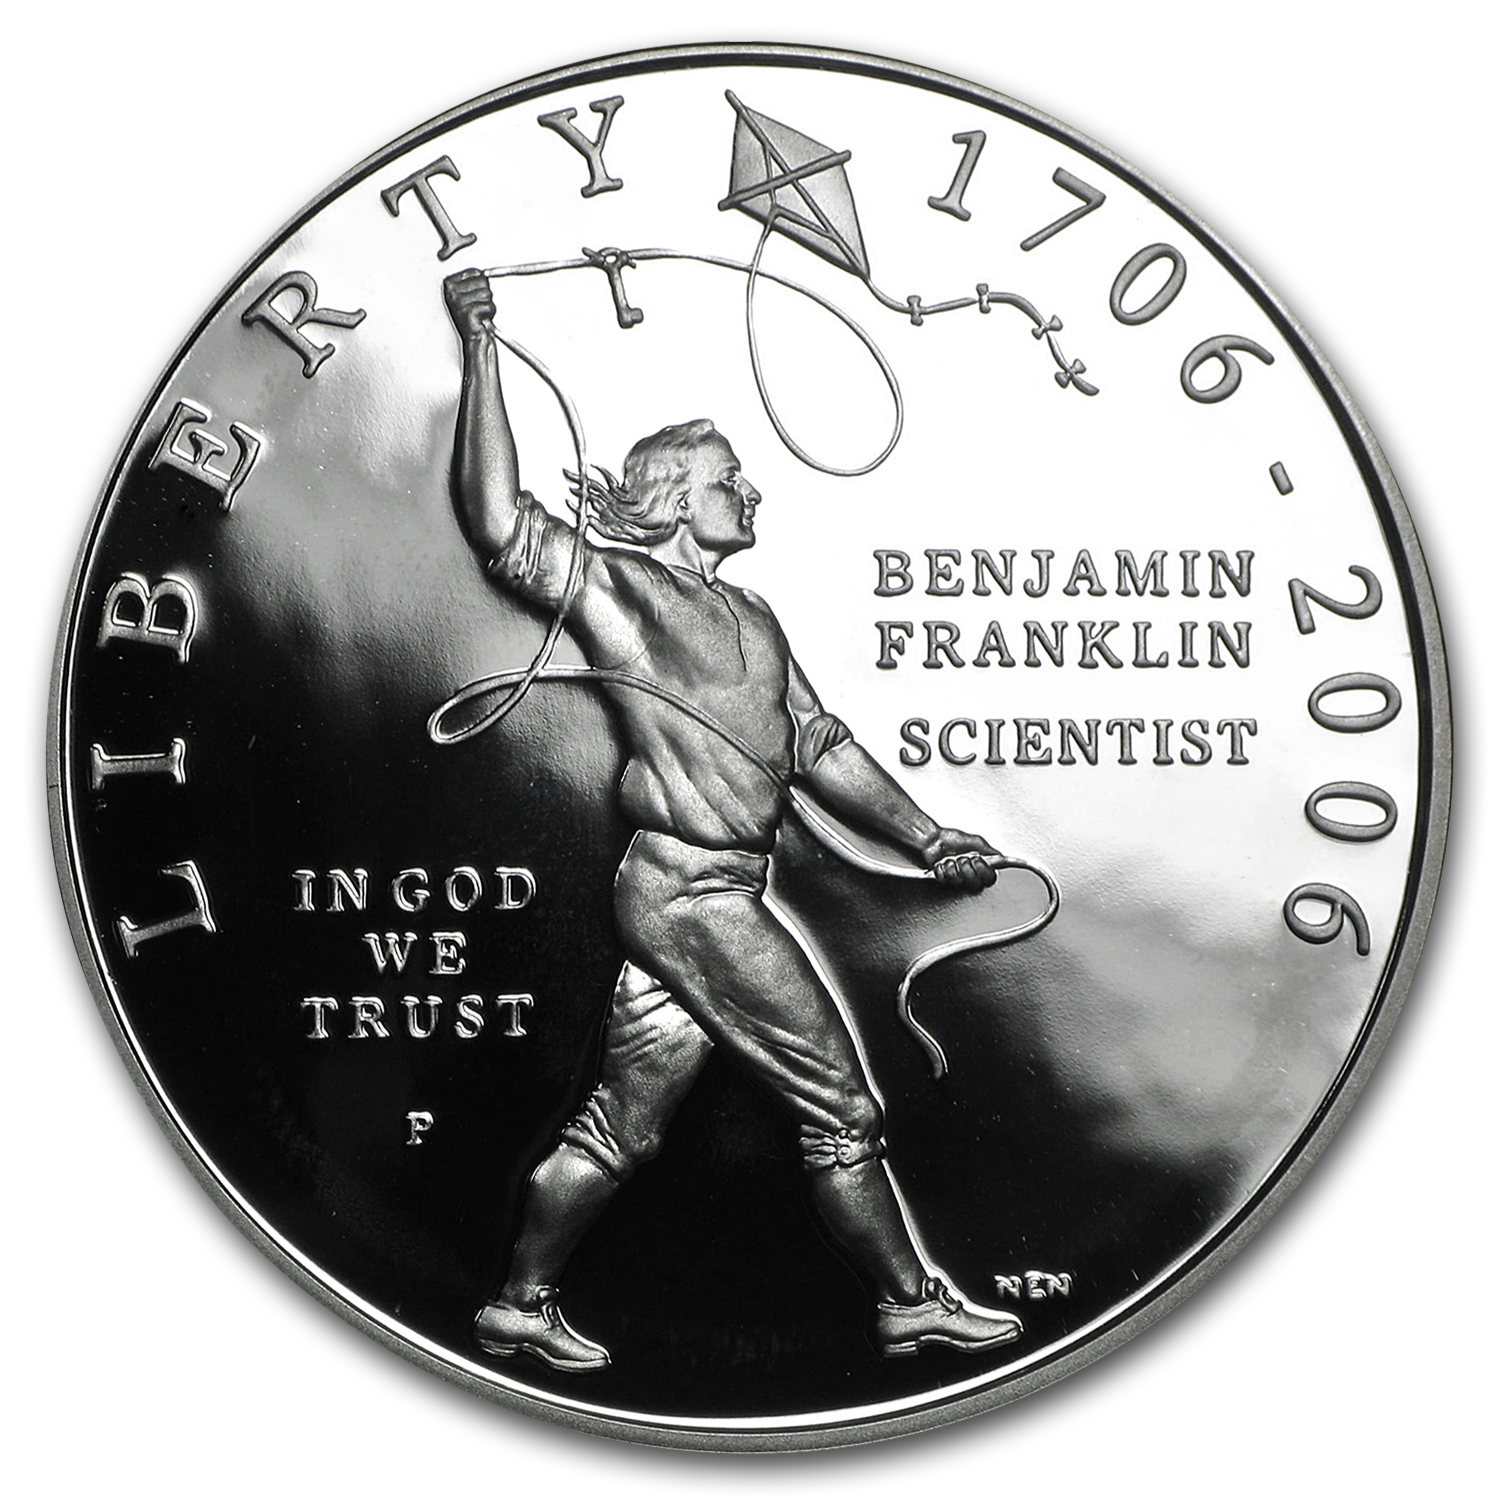 2006-P Ben Franklin Scientist $1 Silver Commem Prf (w/Box & COA)